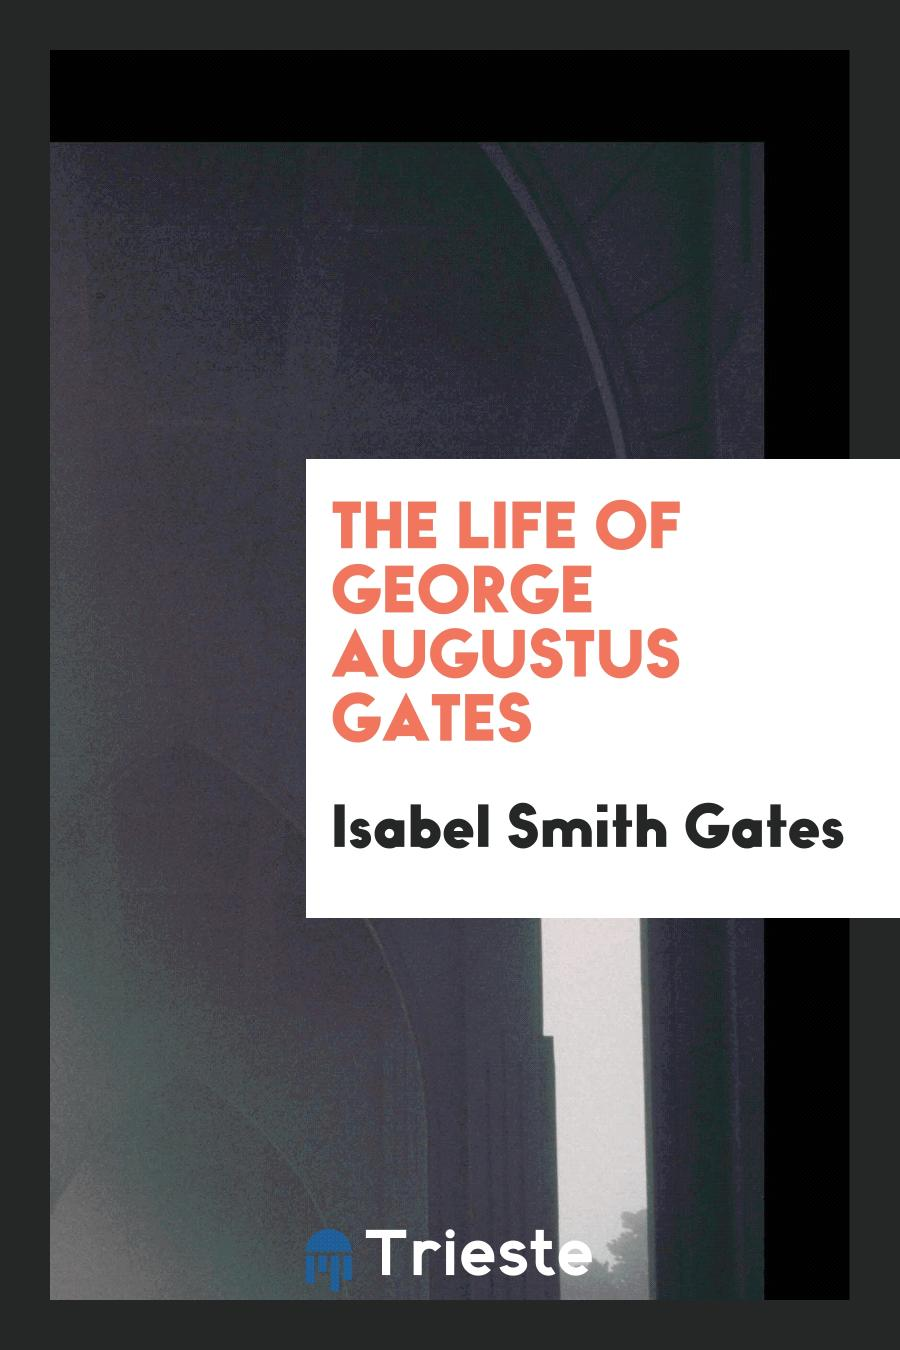 The Life of George Augustus Gates